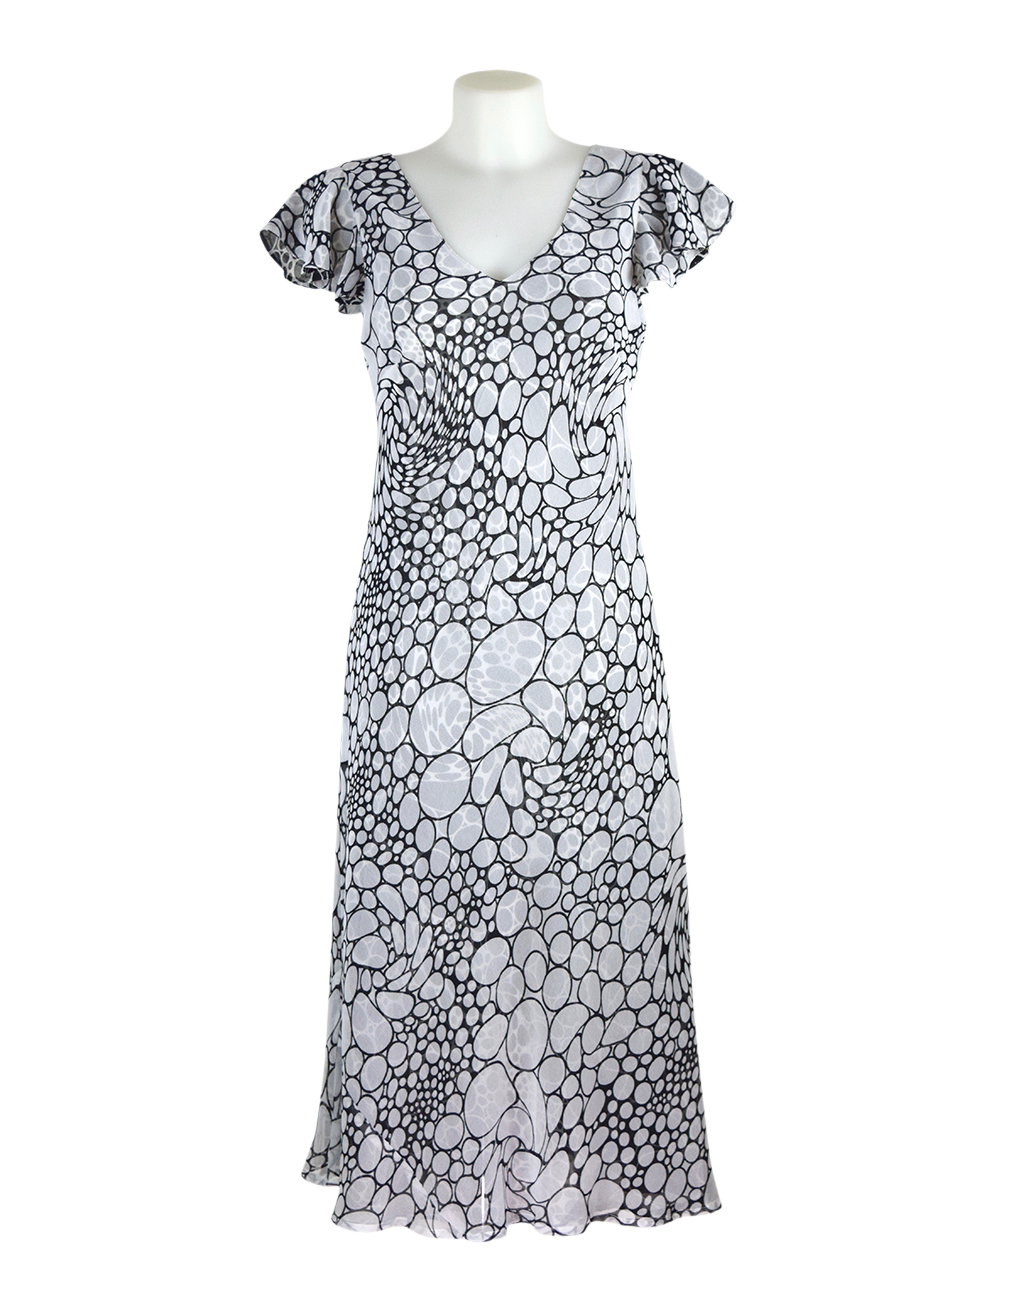 paramour 2in1 dress black/white